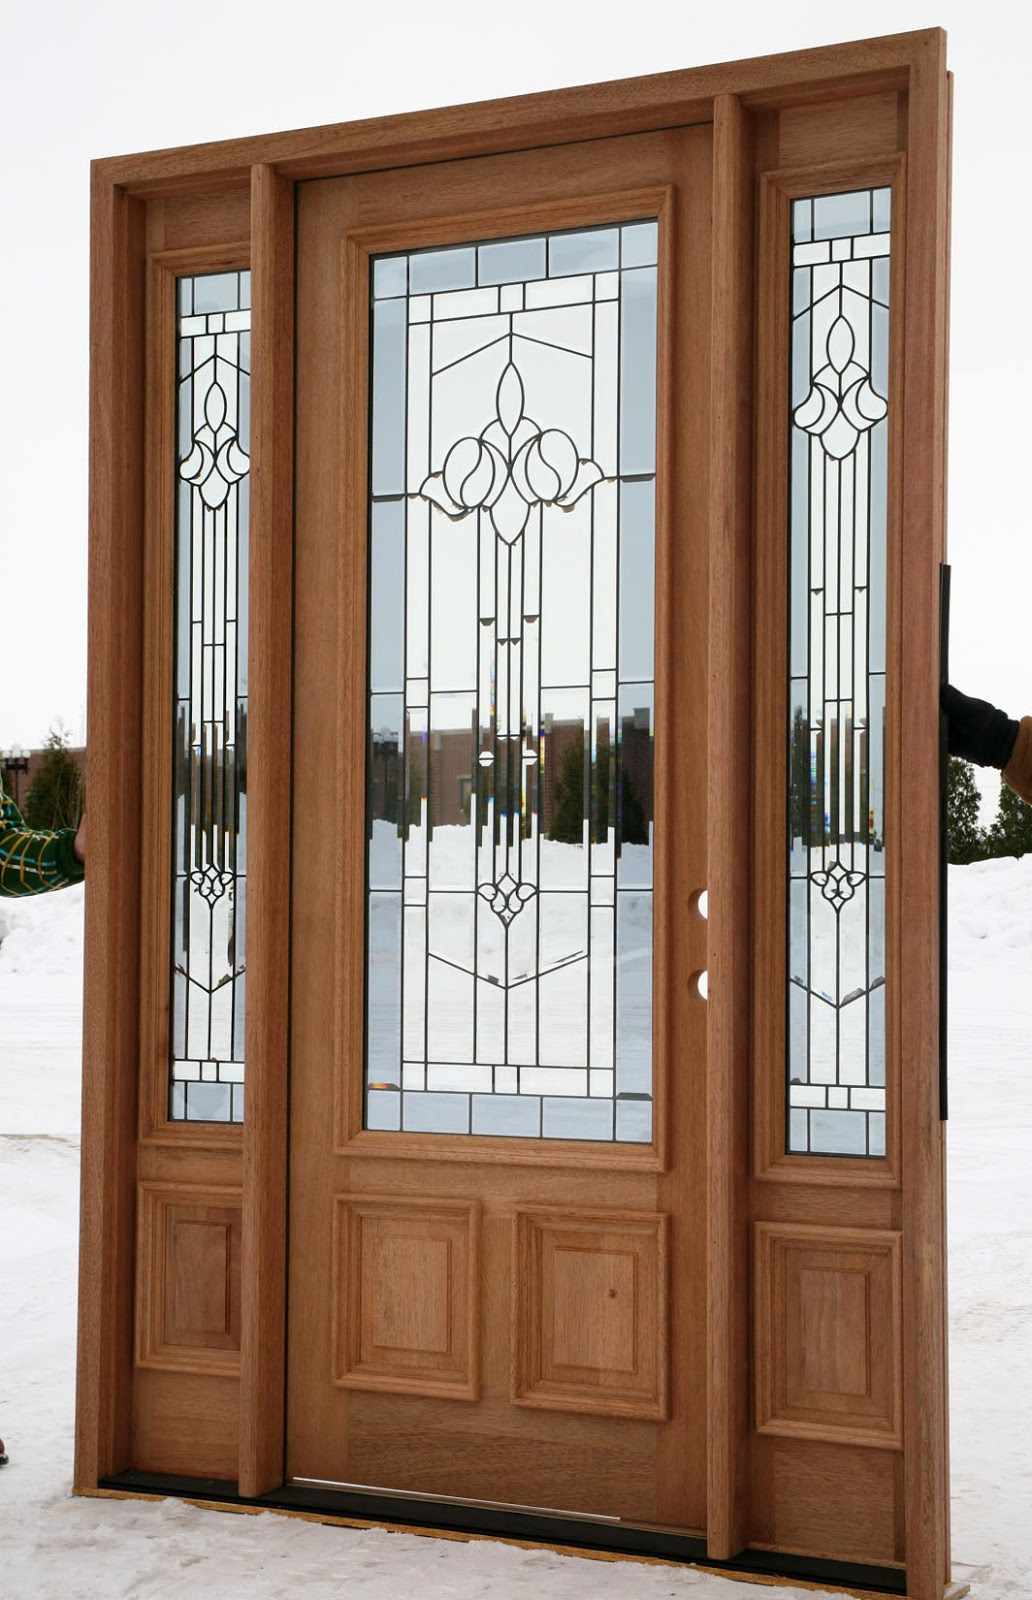 5 front entry doors with sidelights ideas instant knowledge for Front entry door ideas